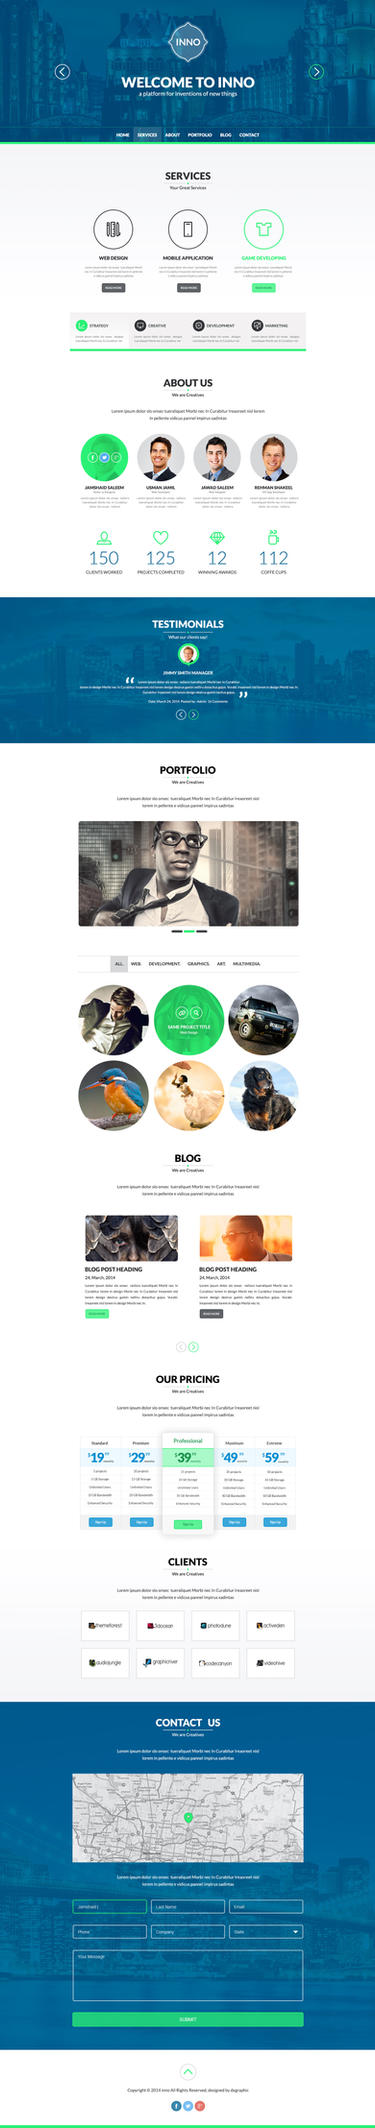 Inno by dxgraphic